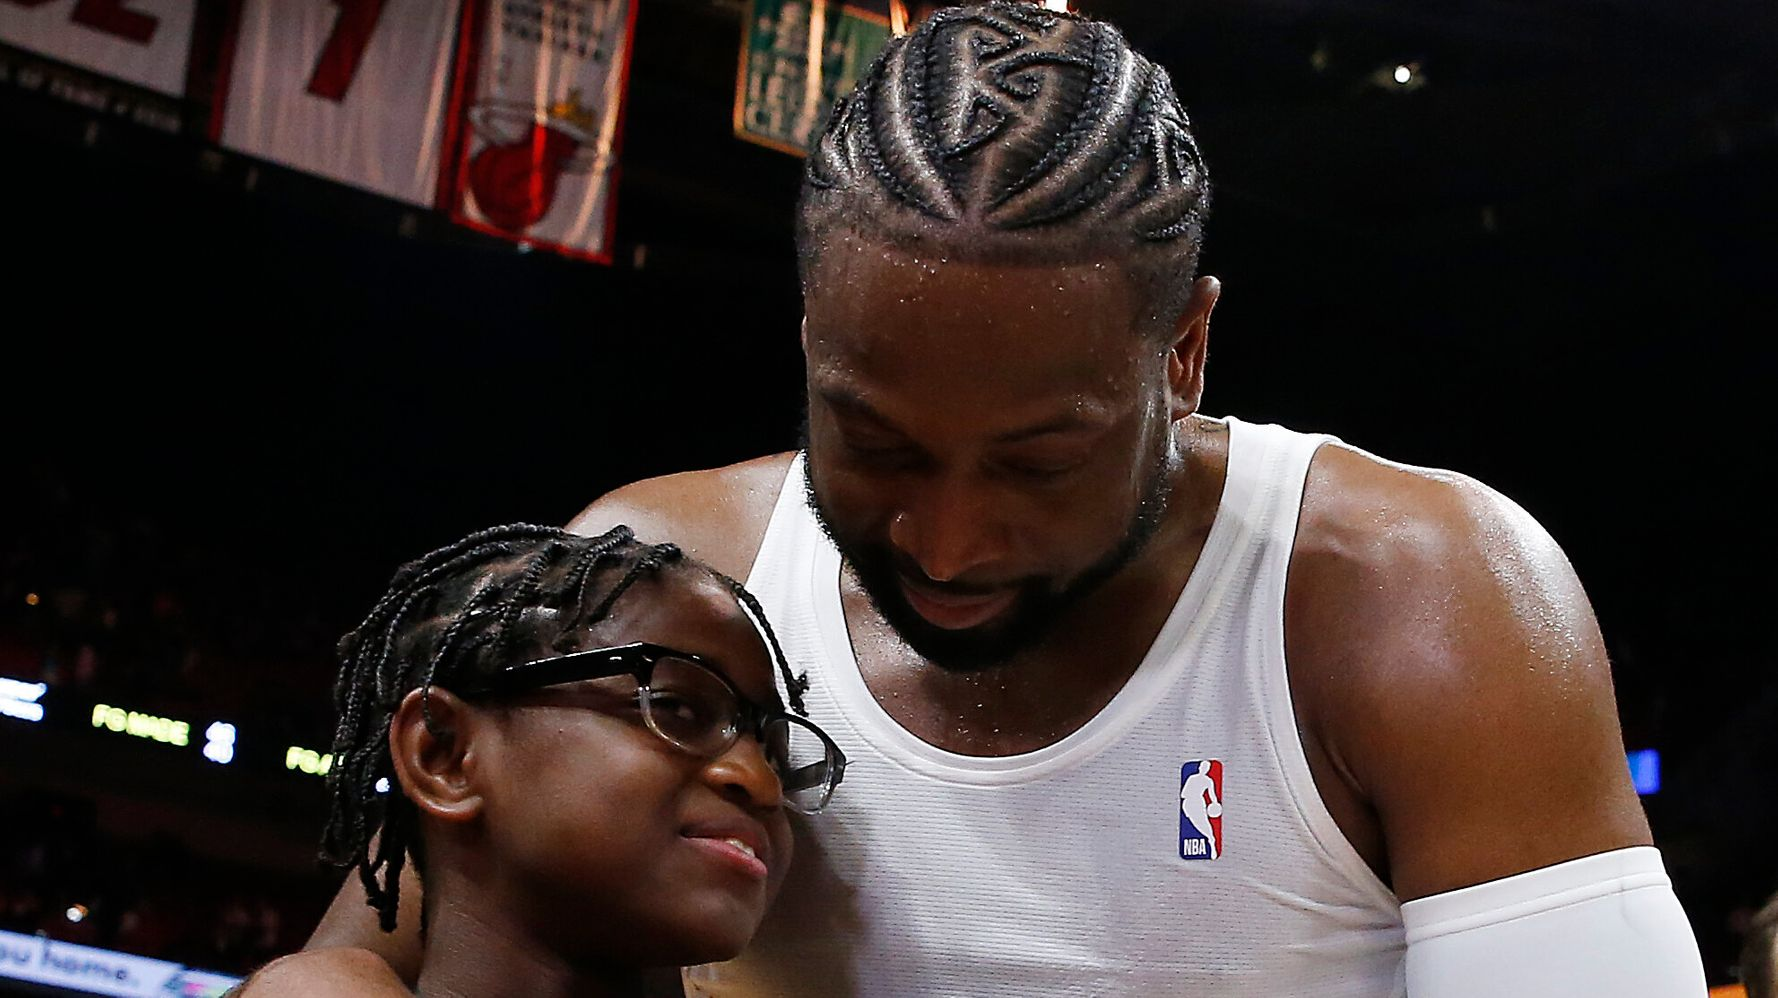 Dwyane Wade's 12-Year-Old Speaks Eloquently About Her 'True' Gender